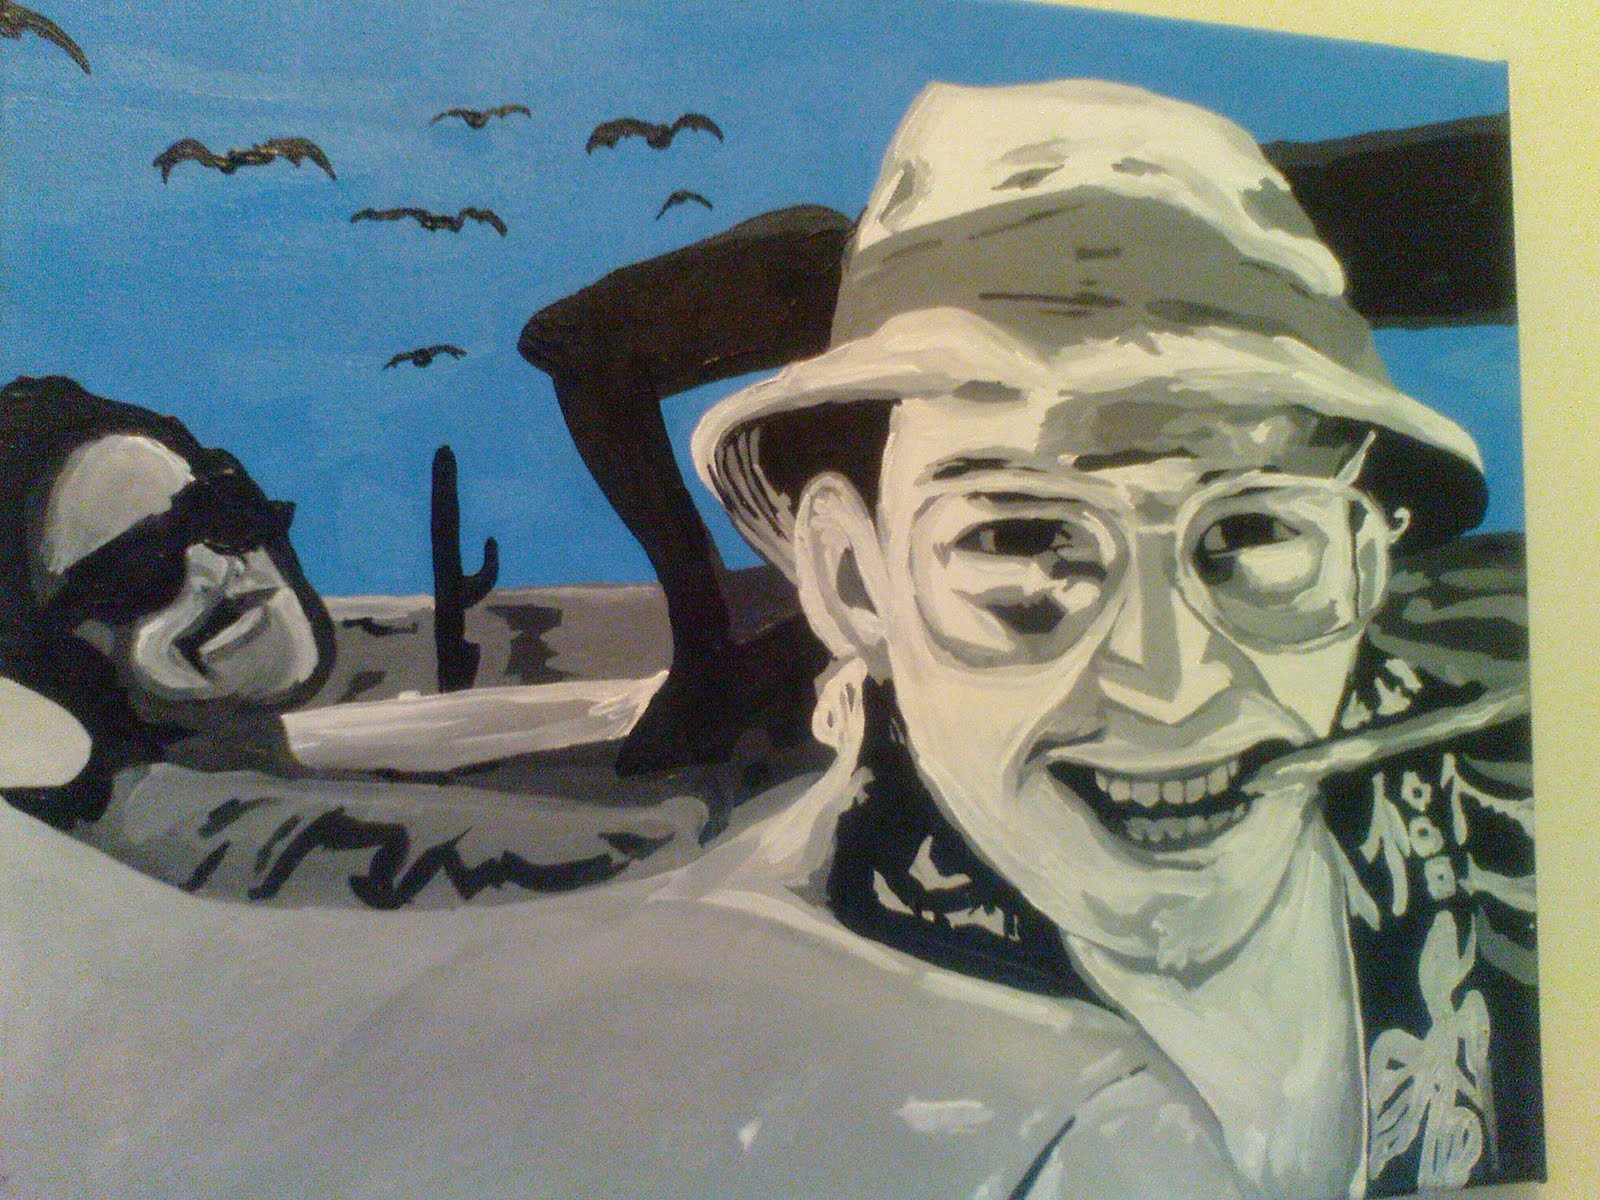 http://1.bp.blogspot.com/_4A9r9yKkkNs/TI82ULC_aVI/AAAAAAAAF1U/K5qA_Sg4sps/s1600/Fear_and_Loathing_in_Las_Vegas_by_superkingkite%2BAwesome%2BArt.jpg